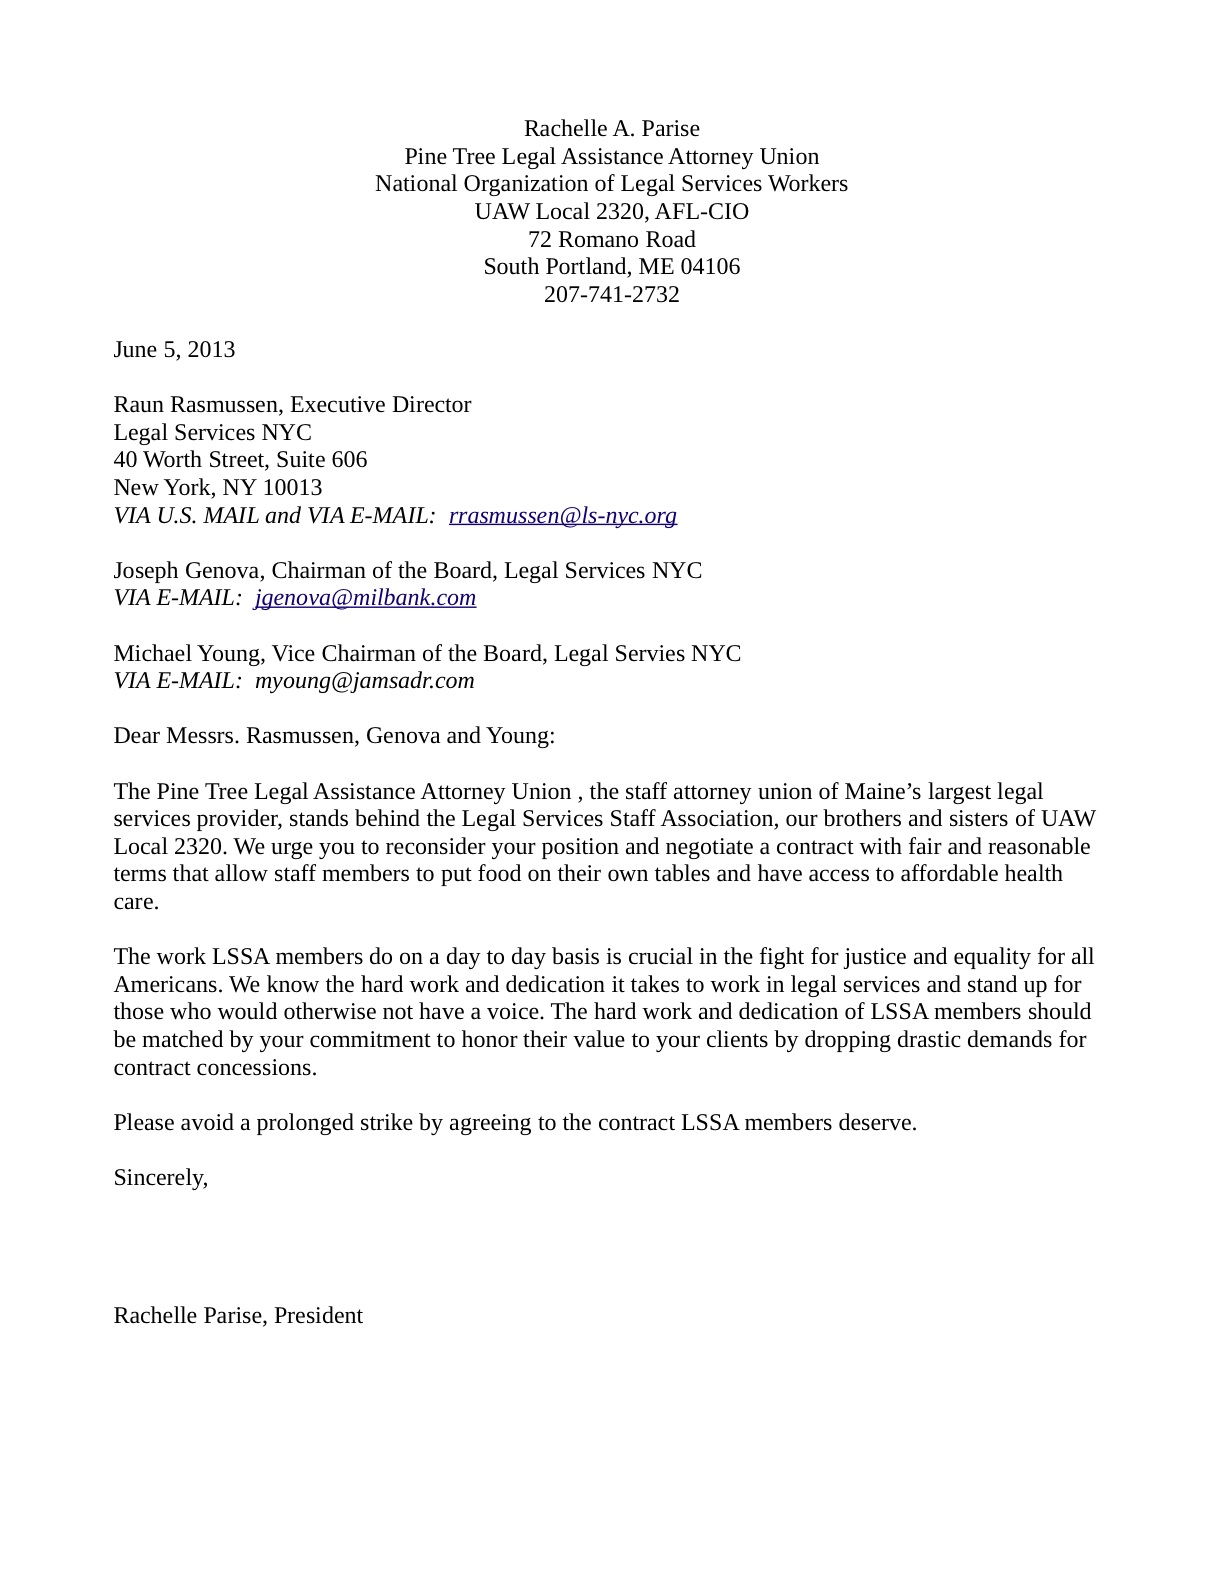 Pine Tree Legal Assistance Attorney Union Letter Of Support  Legal